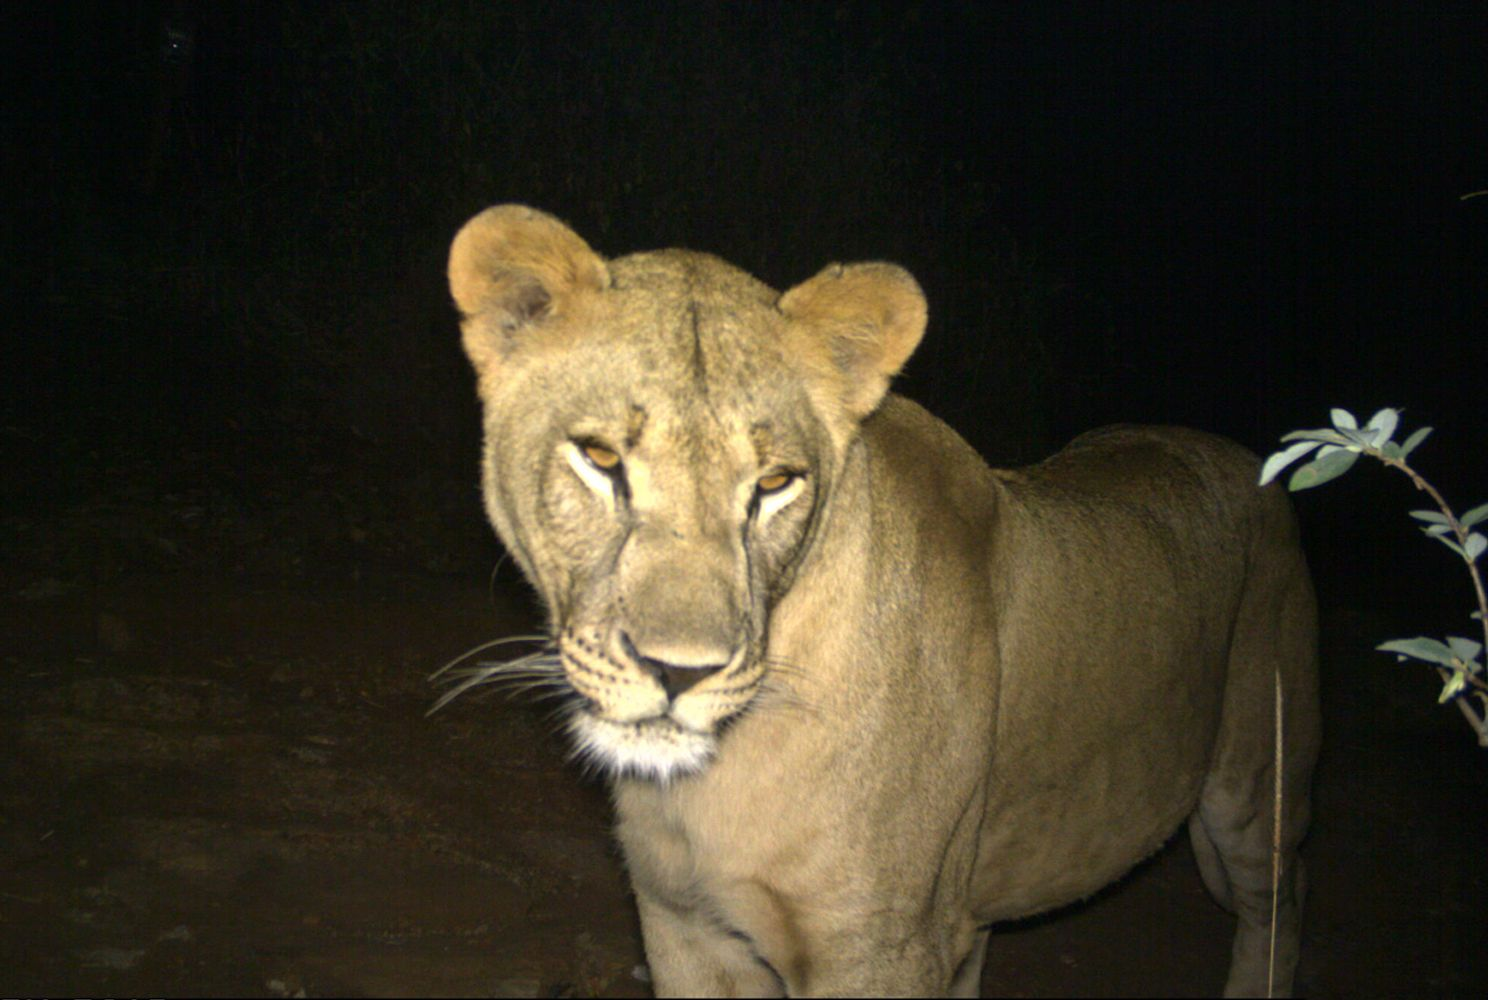 Camera trap image of a lioness in Tanzania